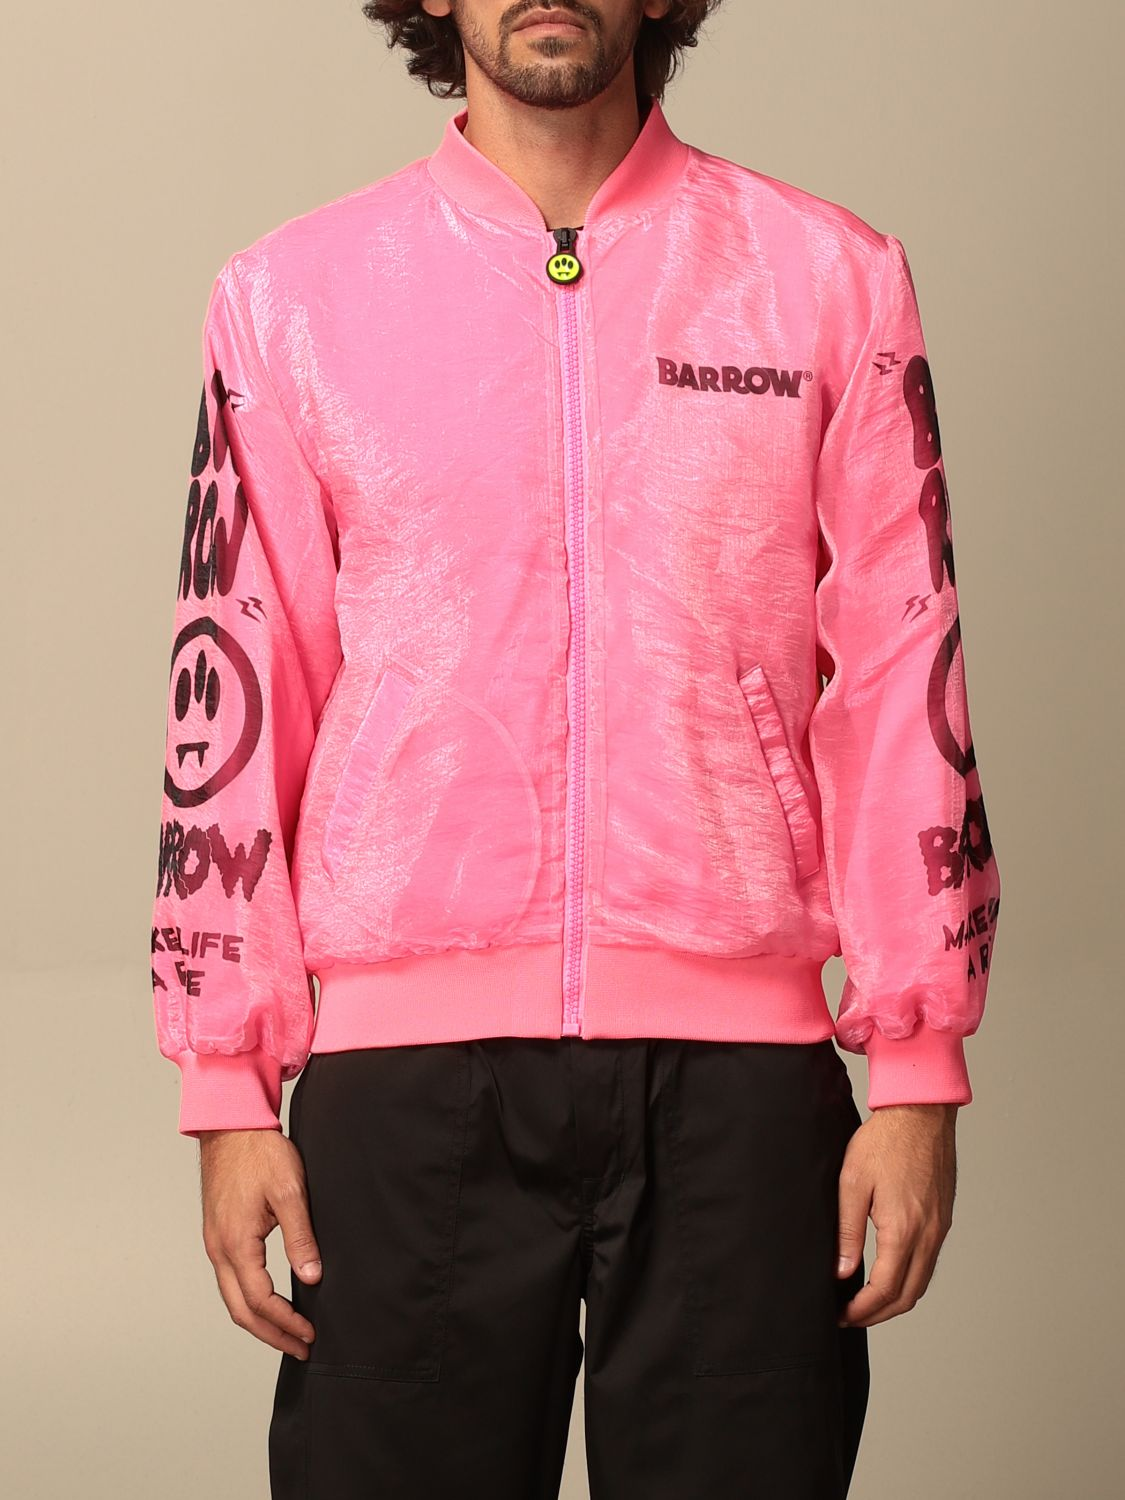 Jacket Barrow: Jacket men Barrow pink 1